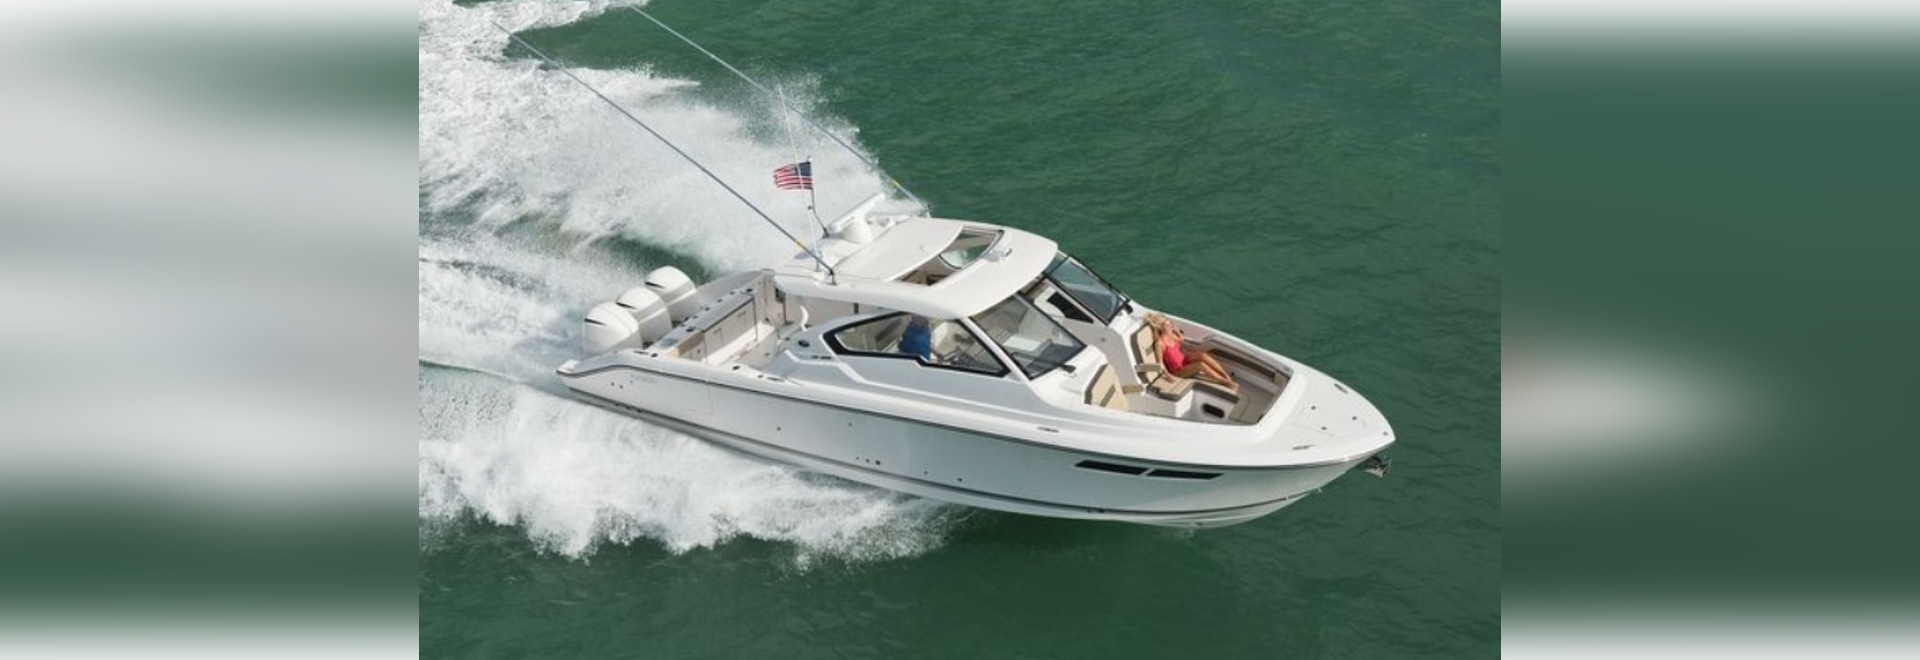 LOA: 37'11"